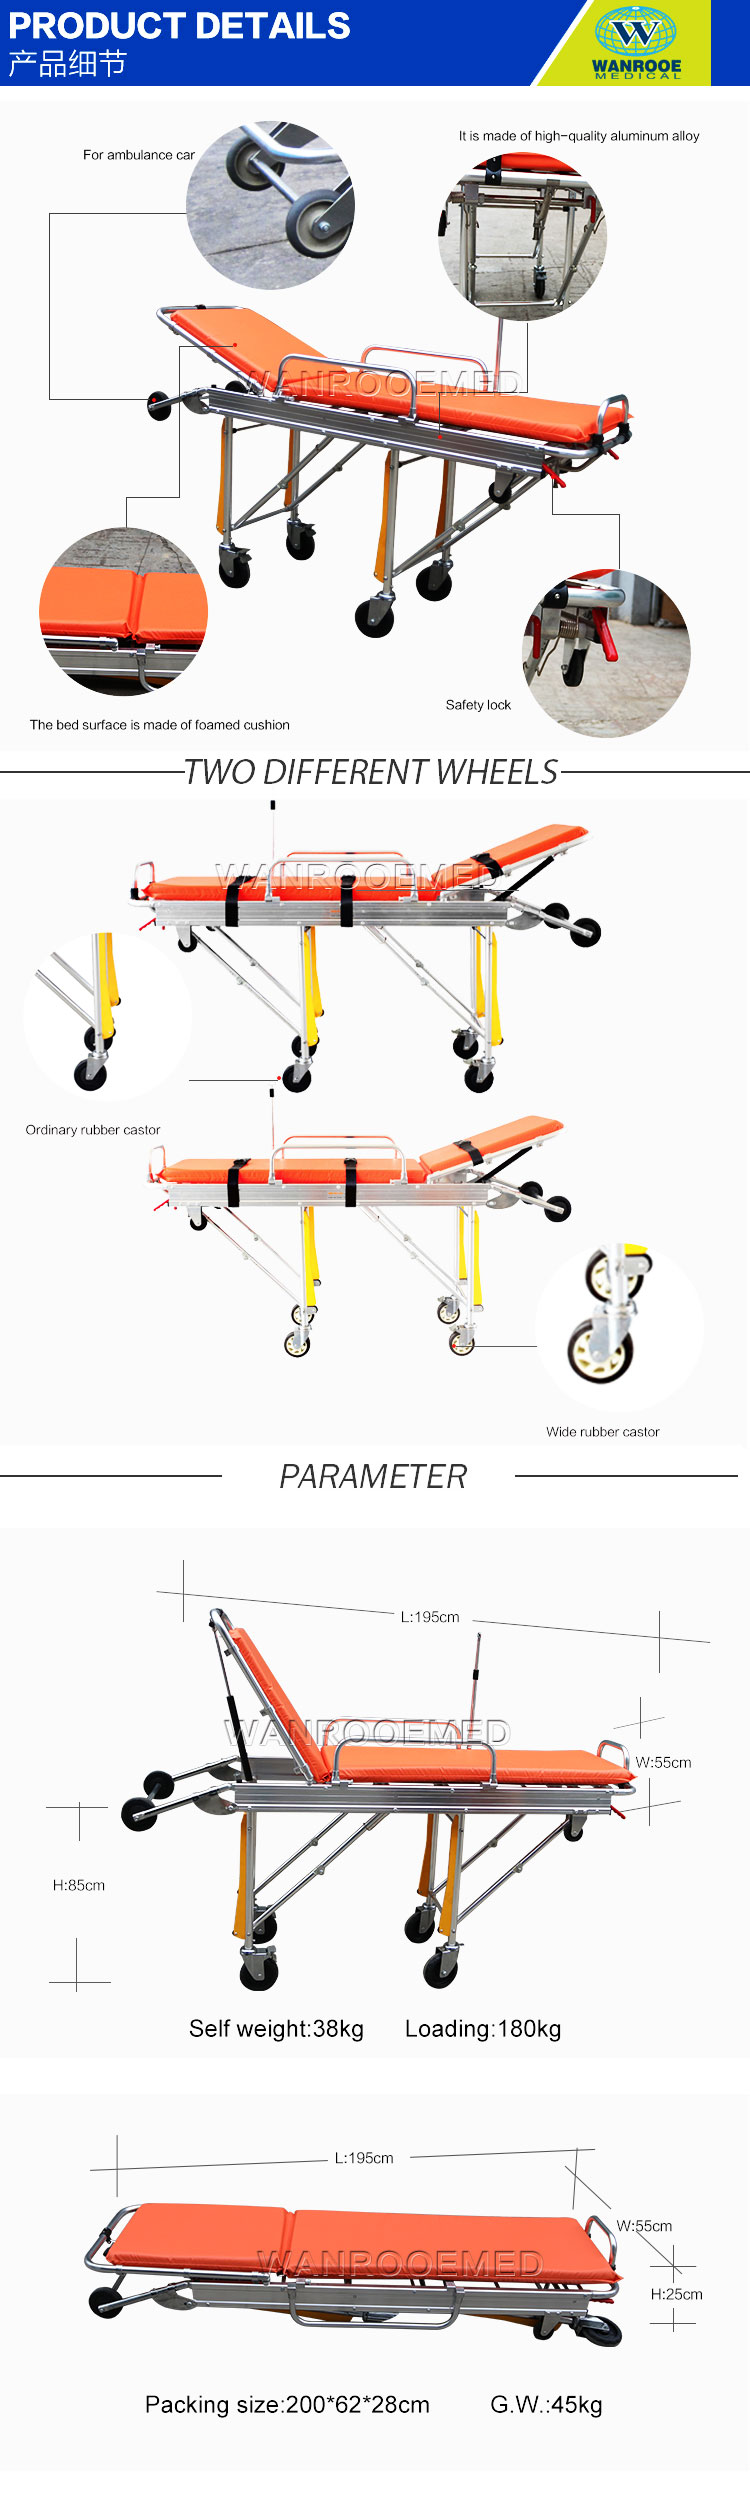 Ambulance Stretcher, Folding Ambulance Stretcher, Hospital Stretcher, Medical Stretcher